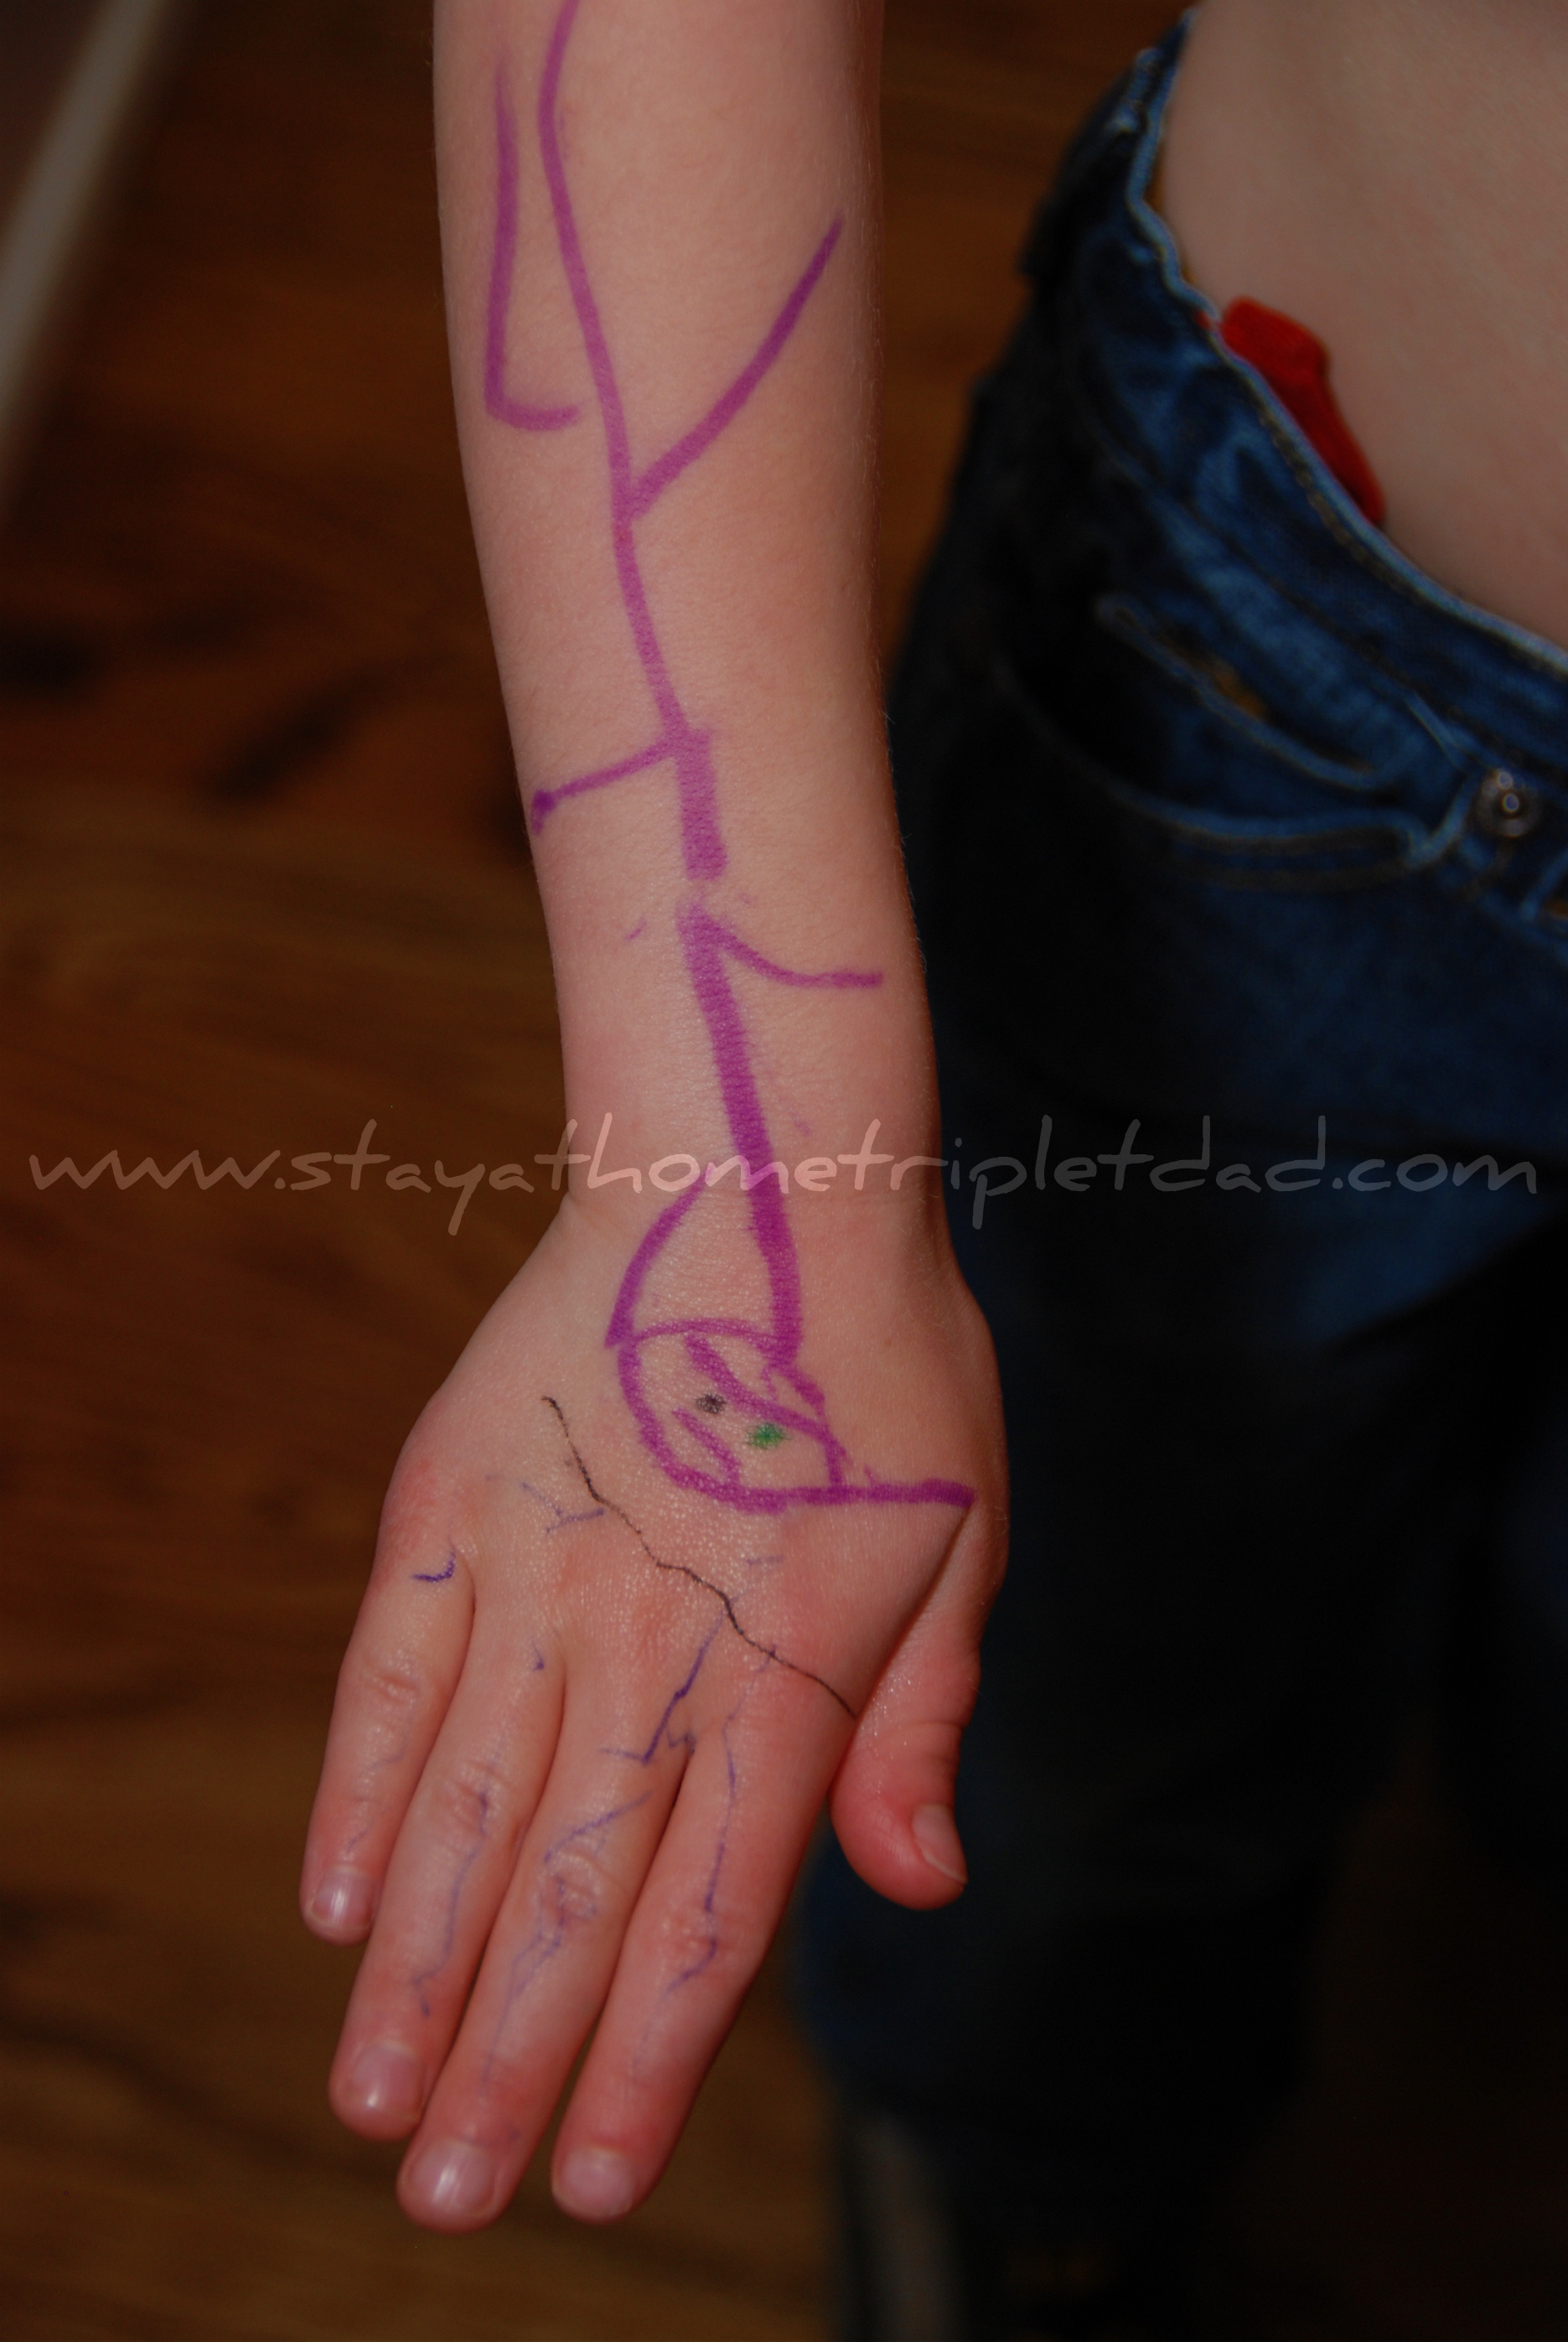 Displaying 16 gt  Images For - Kids With Permanent Tattoos   Kids With Permanent Tattoos